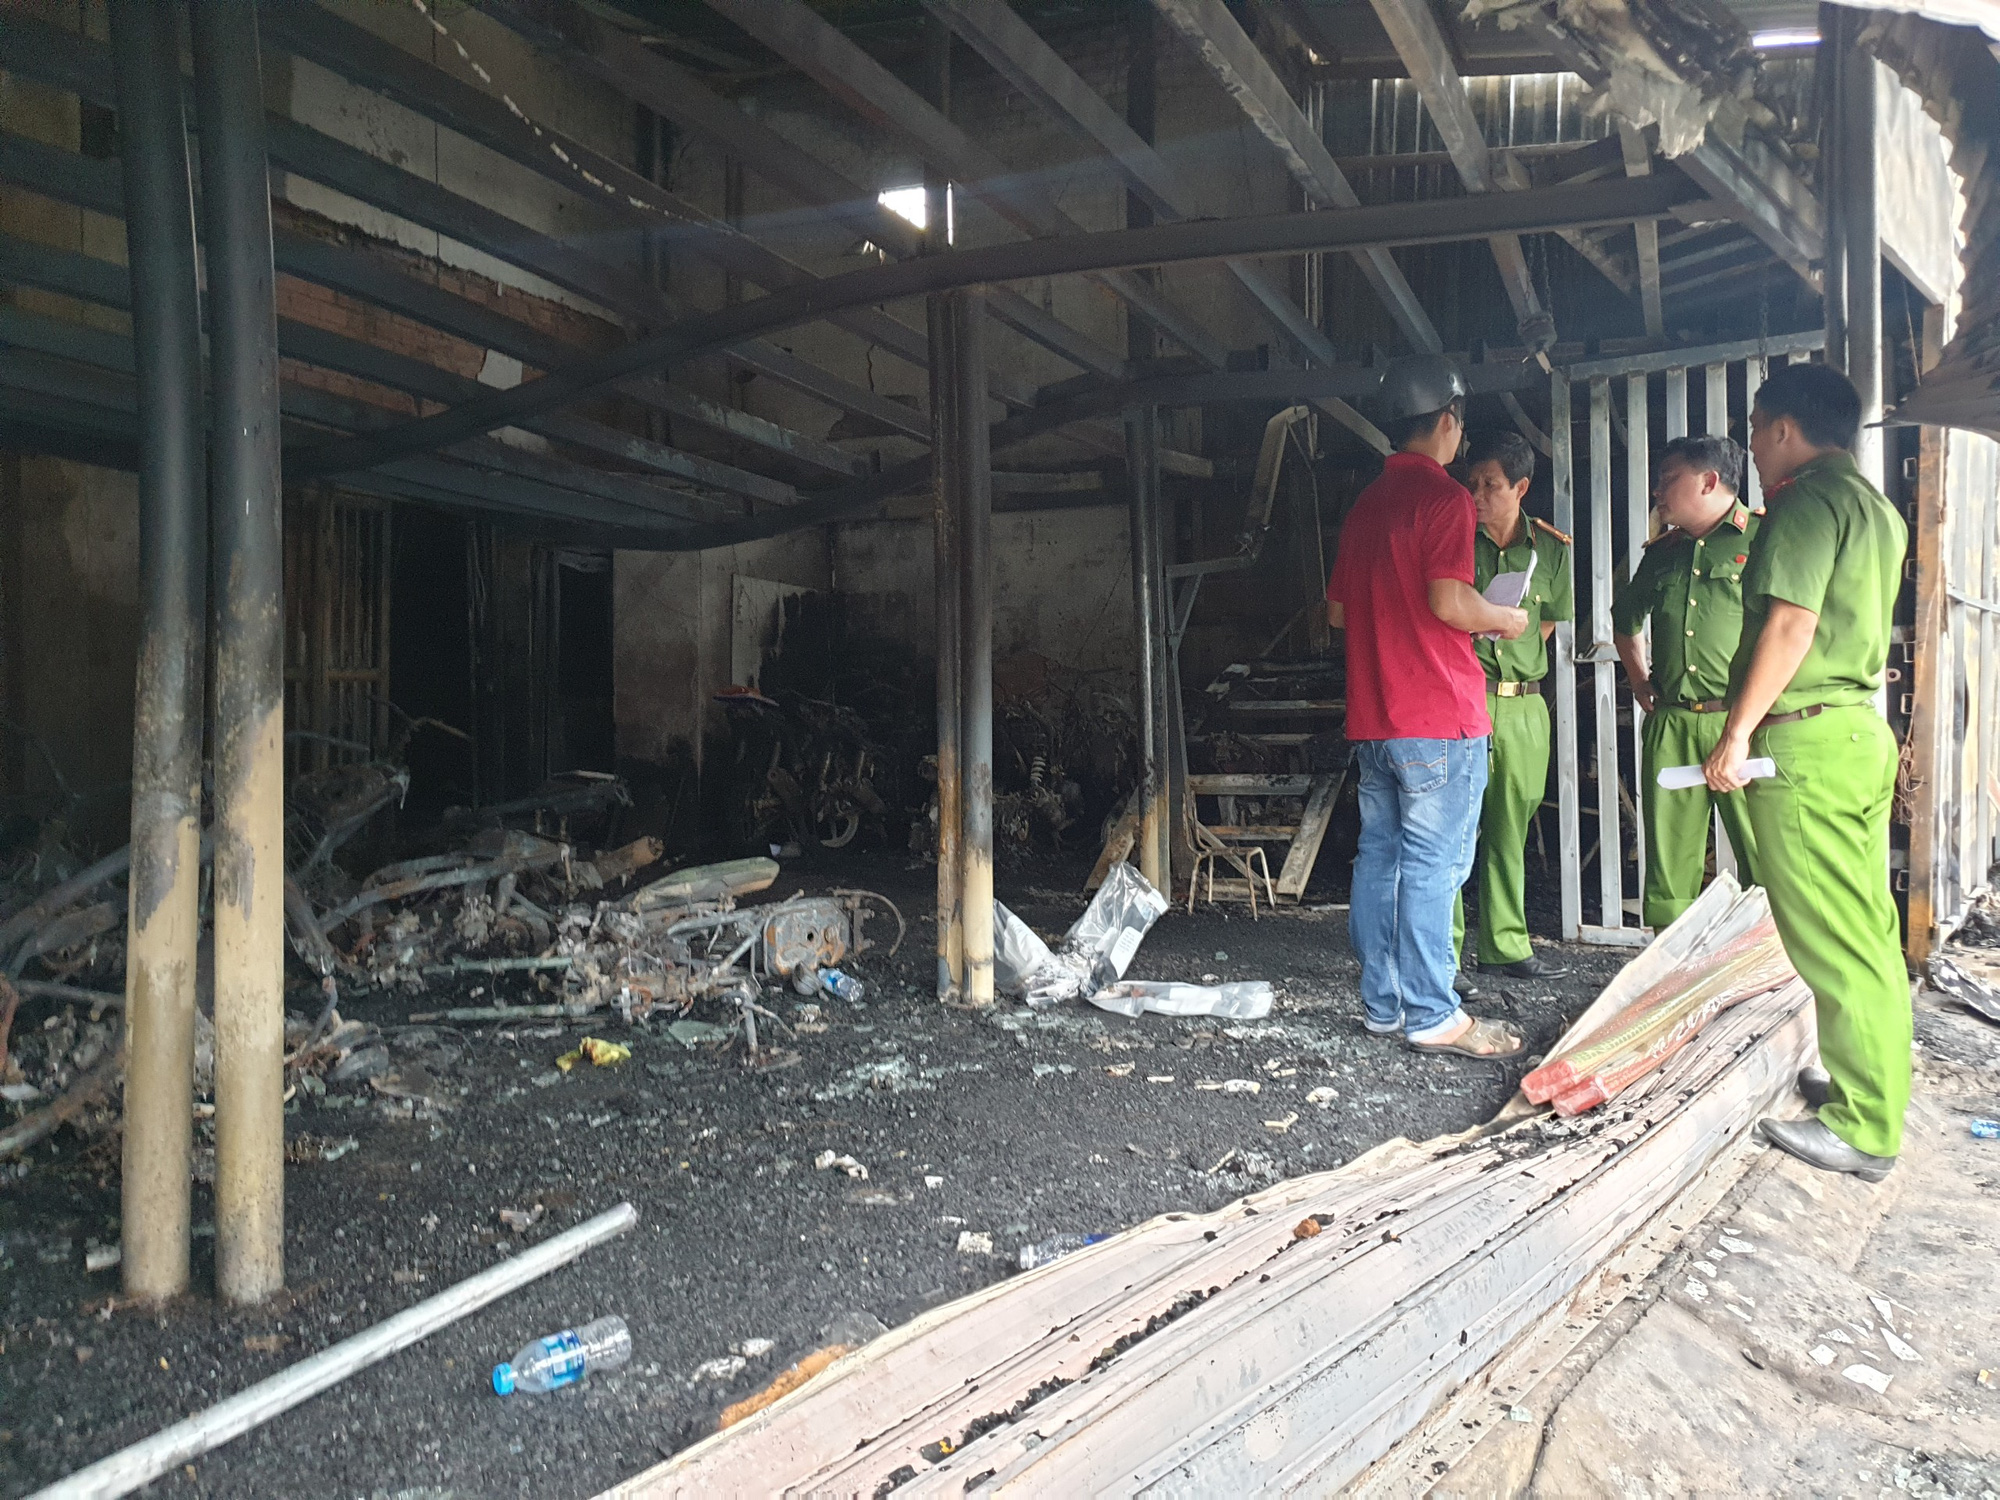 Three killed in house fire over alleged love conflict in southern Vietnam